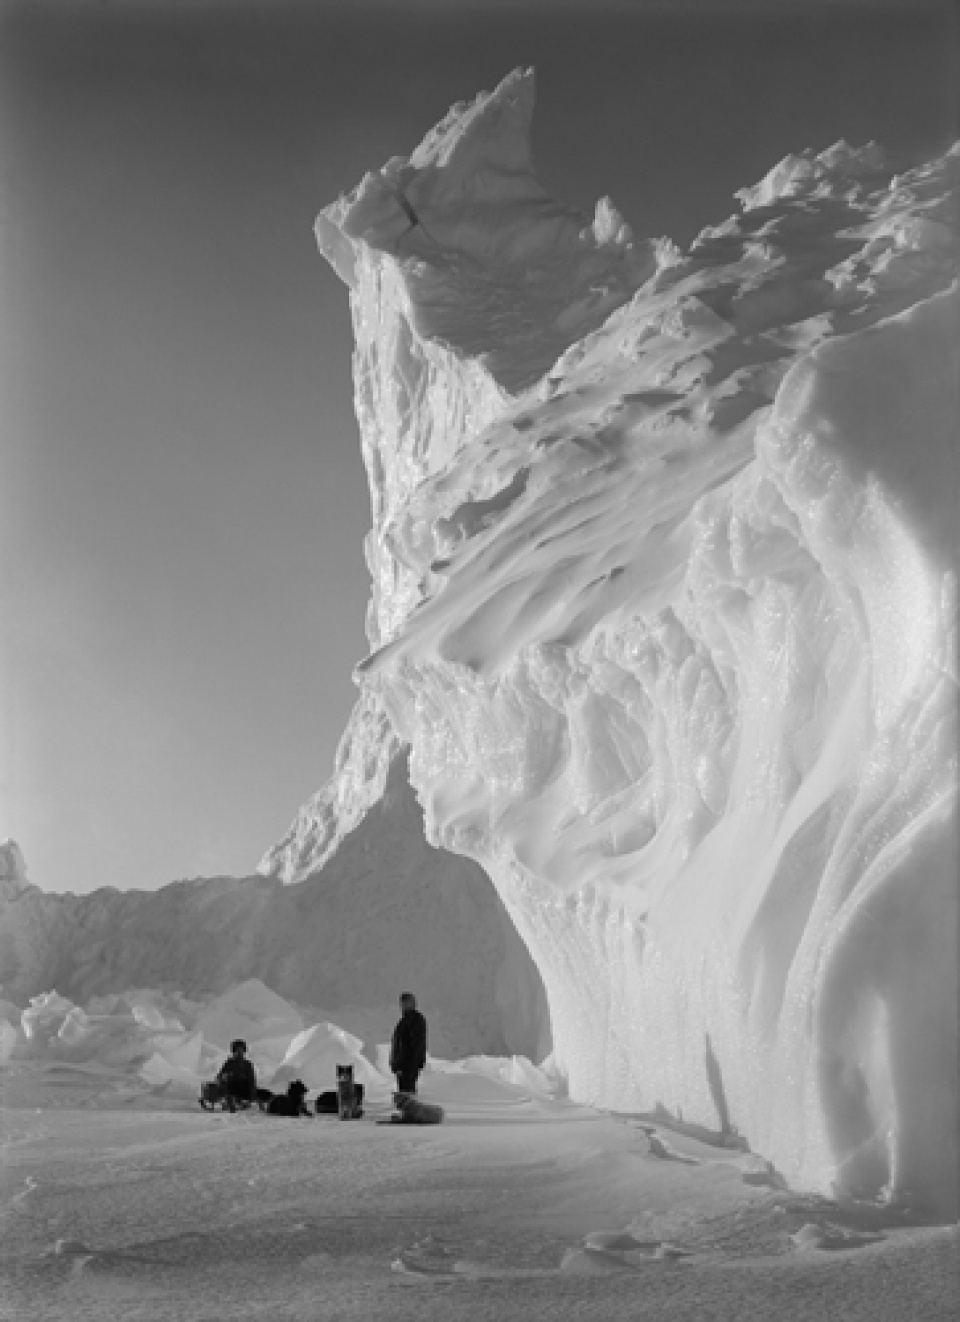 Herbert G. Ponting. Under the Lee of the Castle Berg Antarctica, 17.09.1911